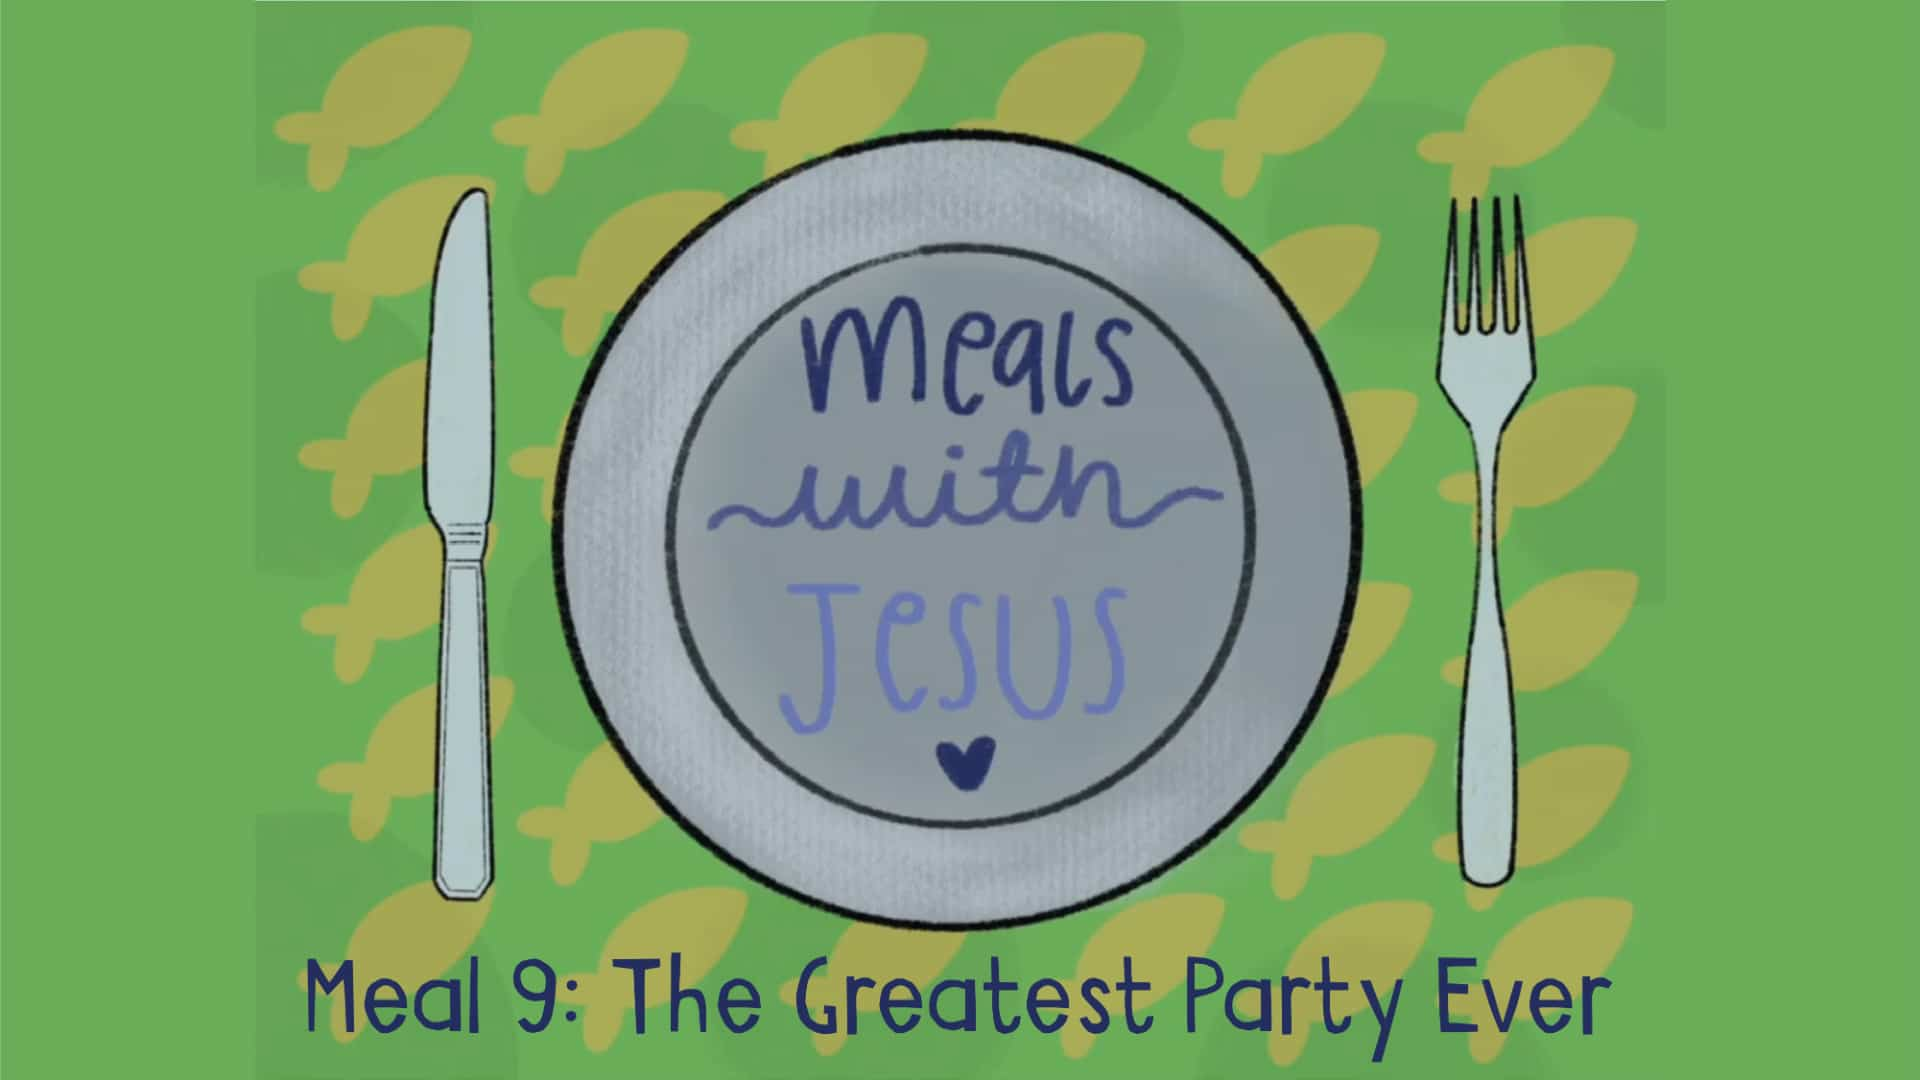 Meals with Jesus: The Greatest Party Ever